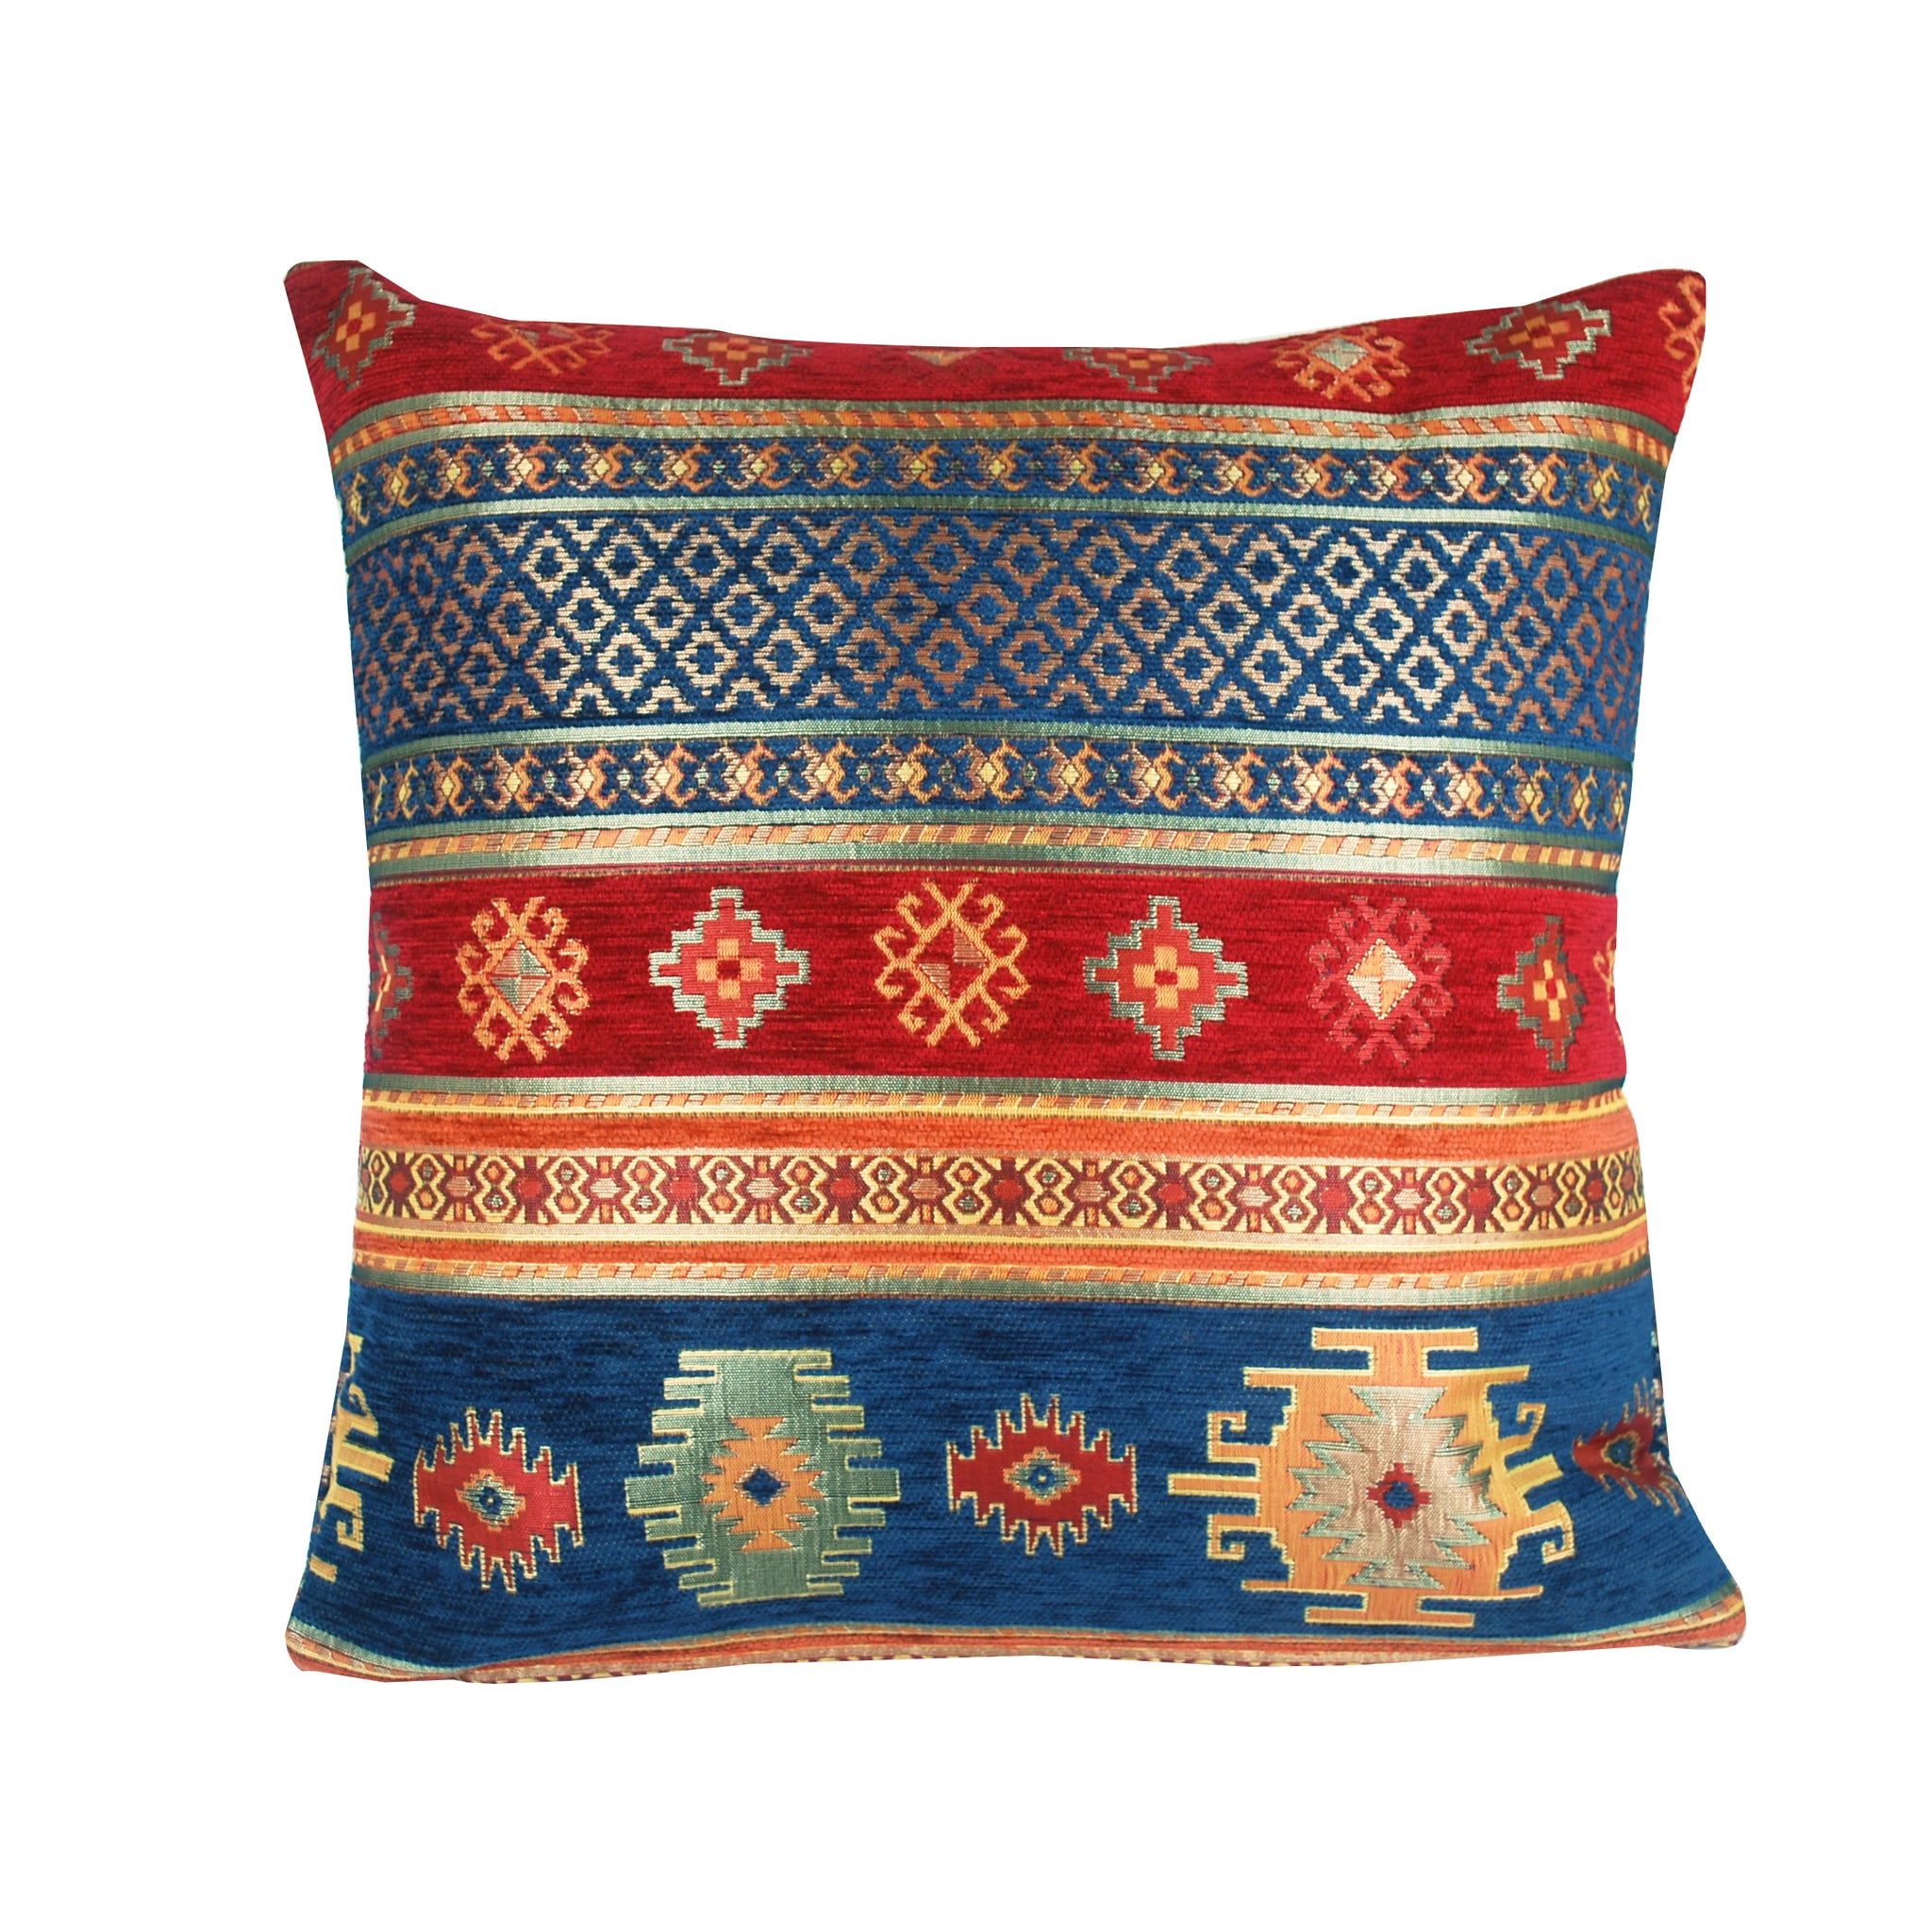 Traditional Turkish Handmade Cushion 42x42cm ET-M28 Blue & Red